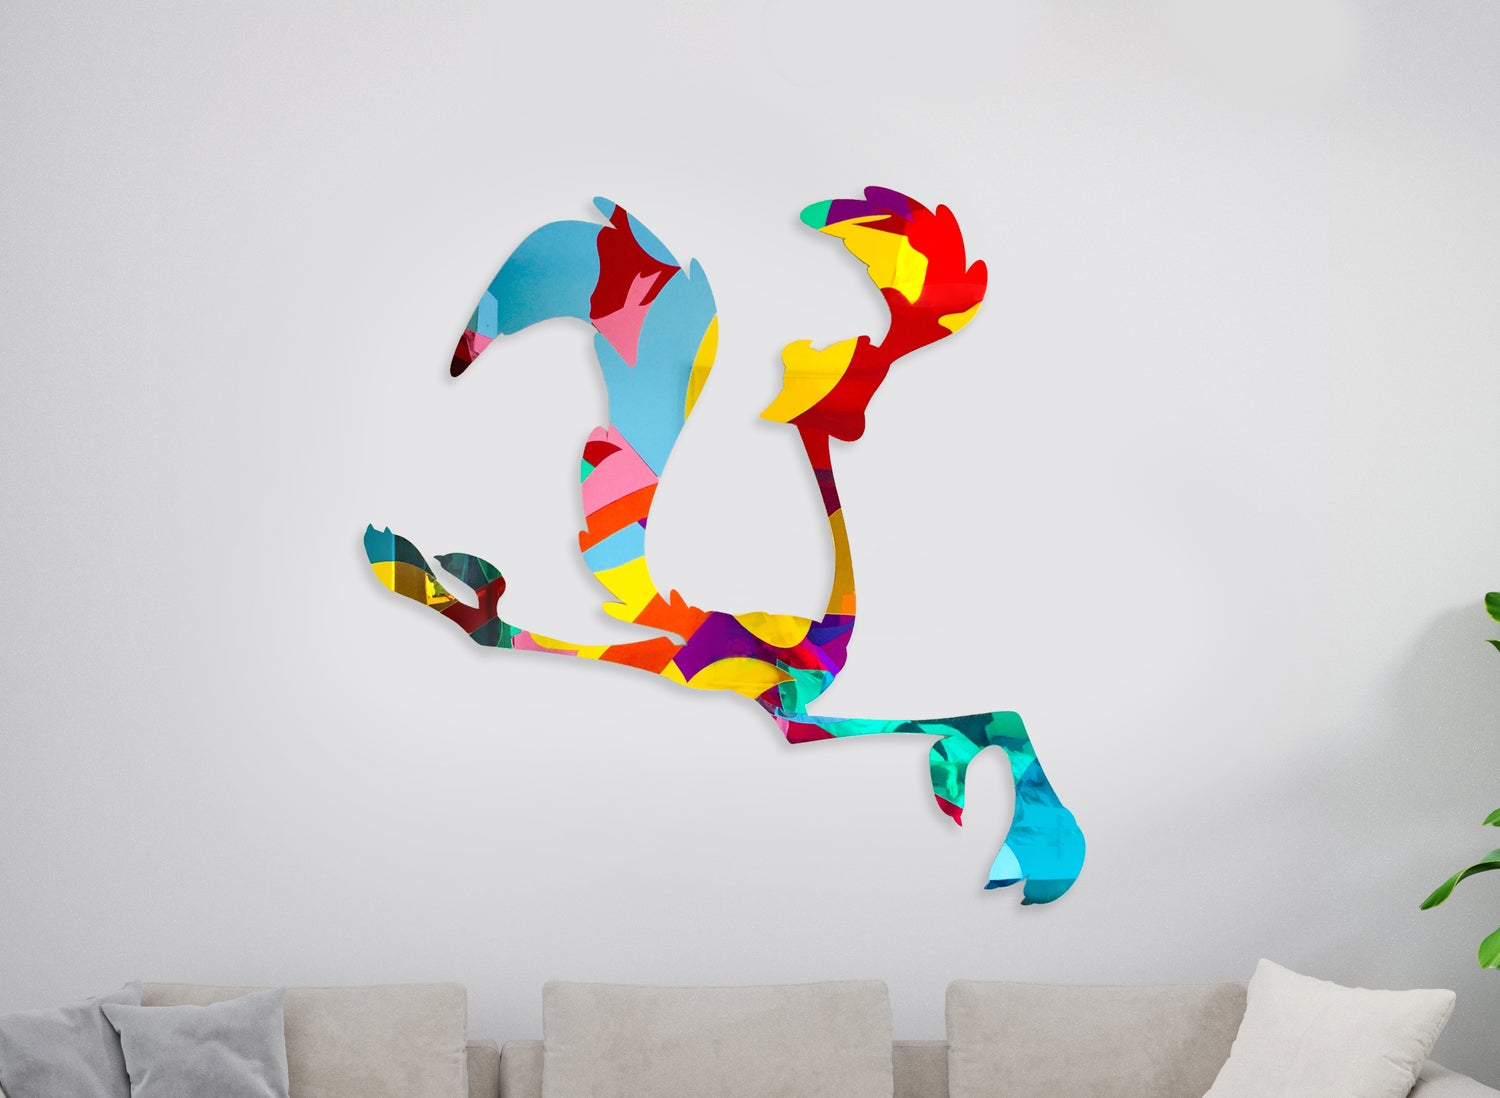 Image of Road Runner mirrors sculpture